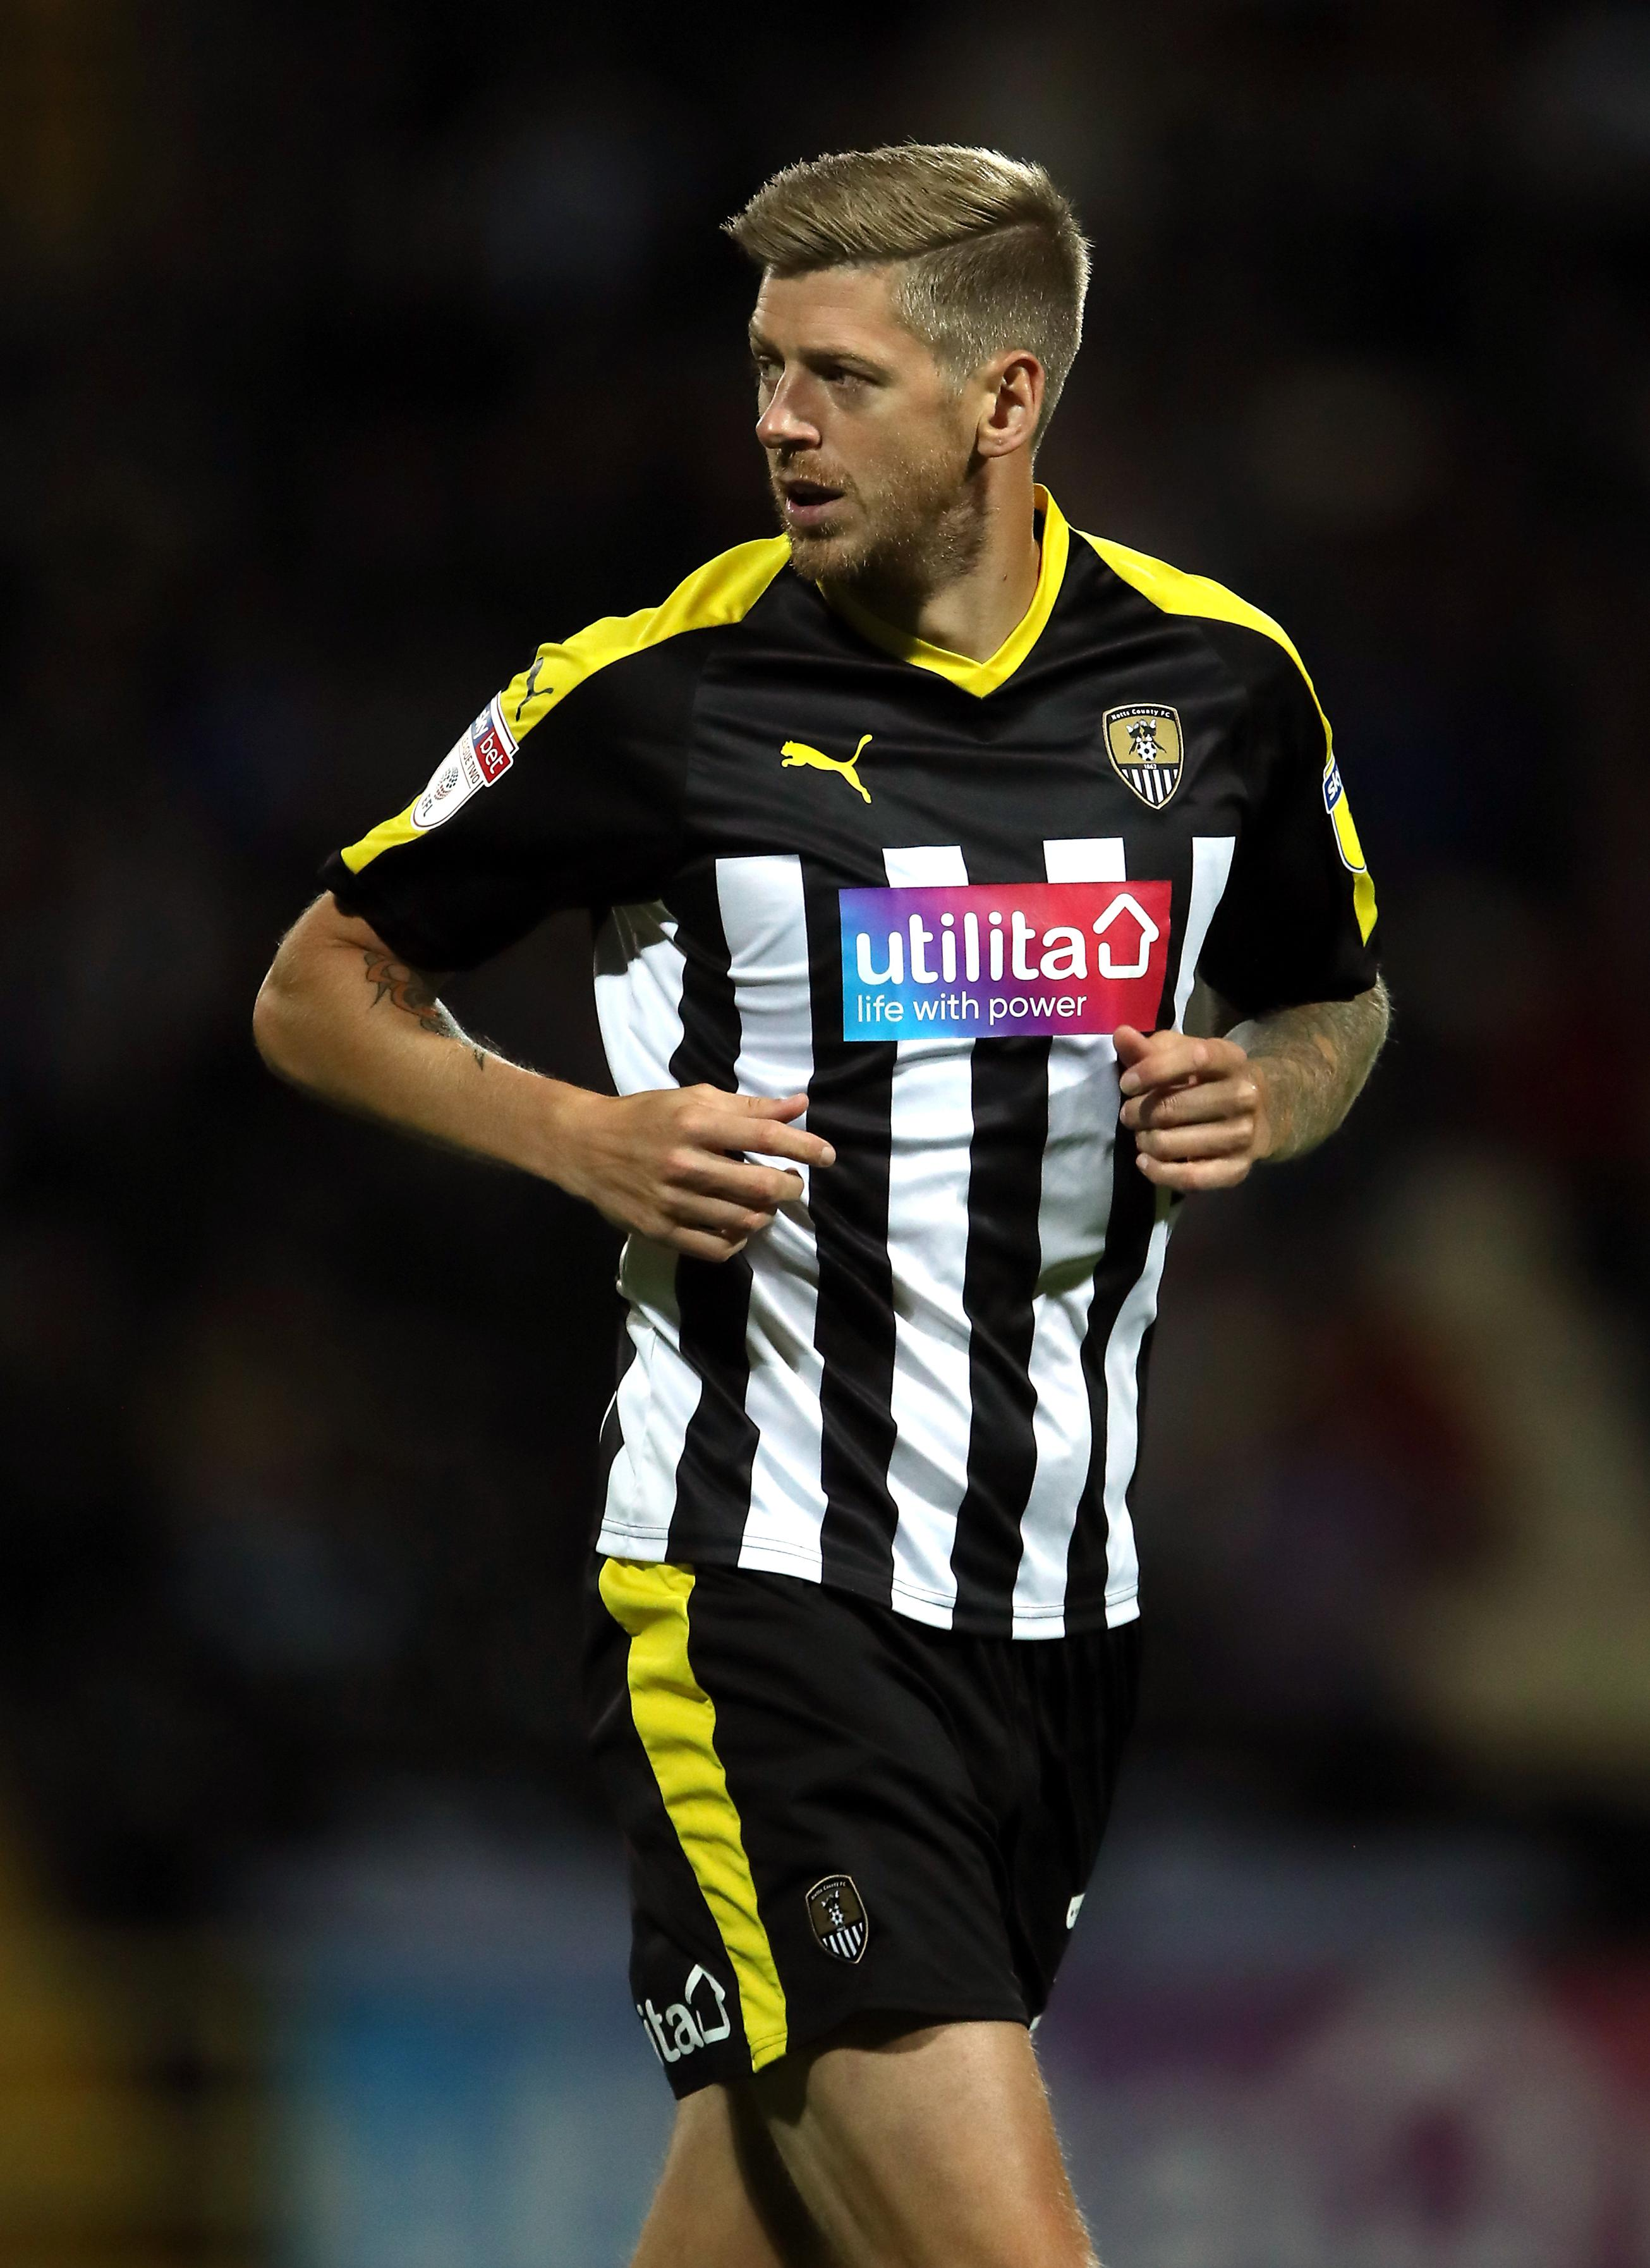 35-year-old Jon Stead has scored nine goals this season, but will it be enough to keep Notts up?